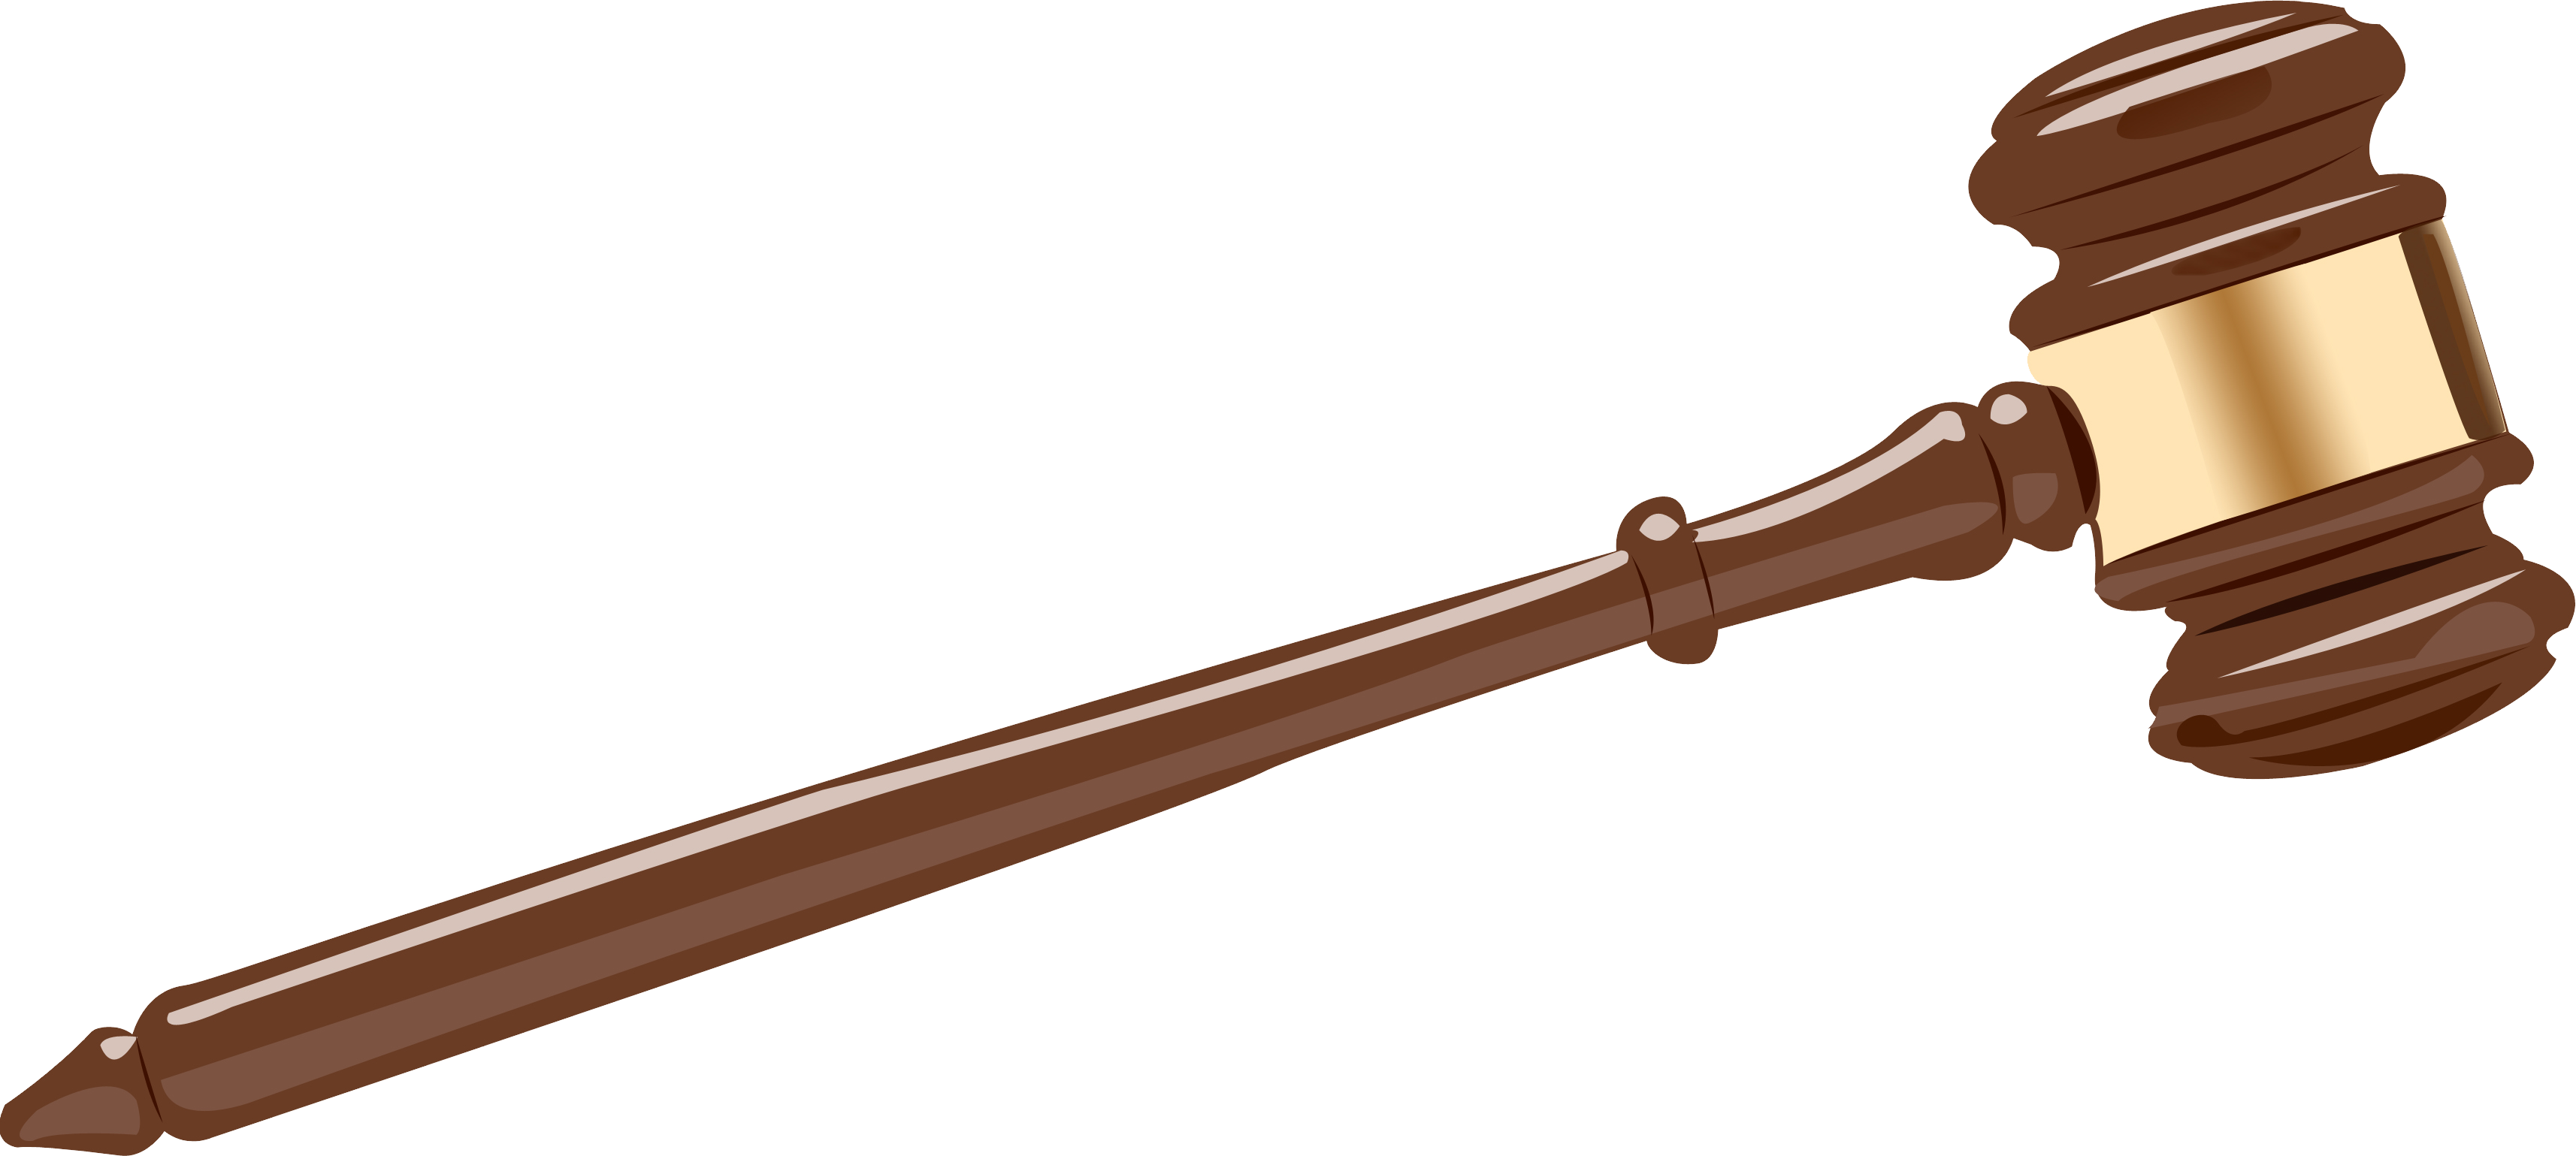 Png image purepng free. Transparent gavel png transparent download